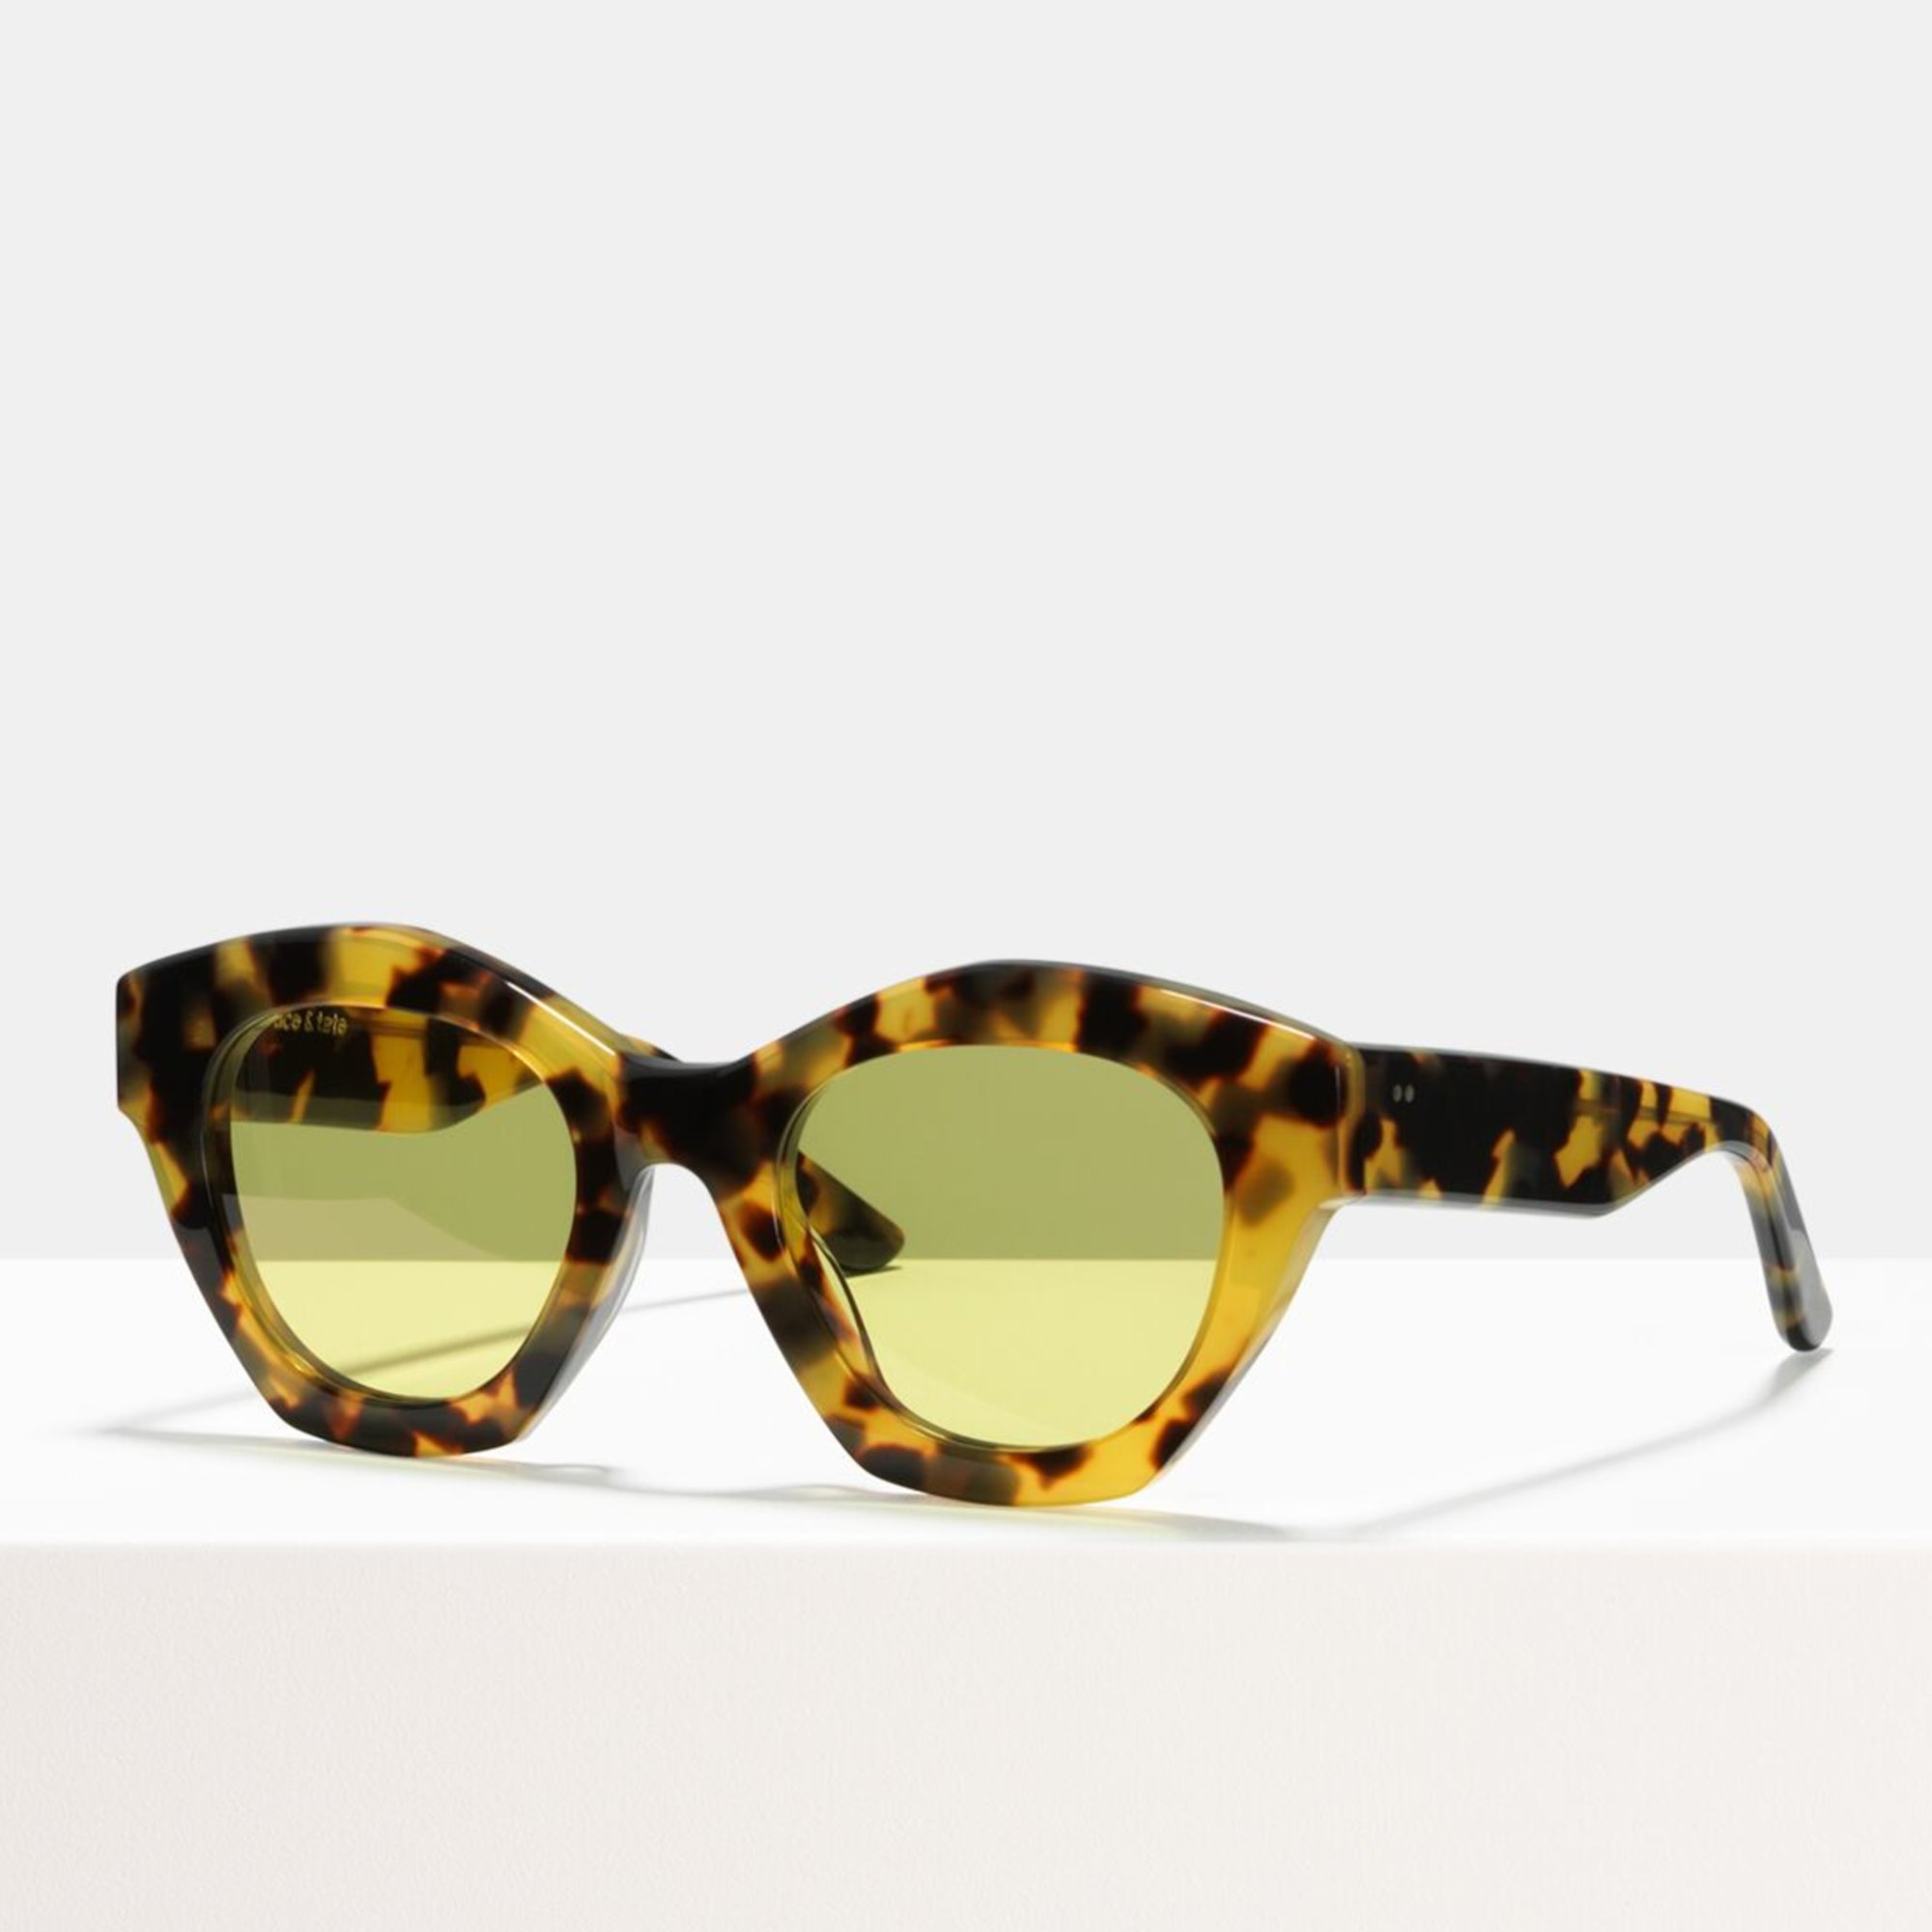 Ace & Tate Sunglasses |  acetate in Brown, Yellow